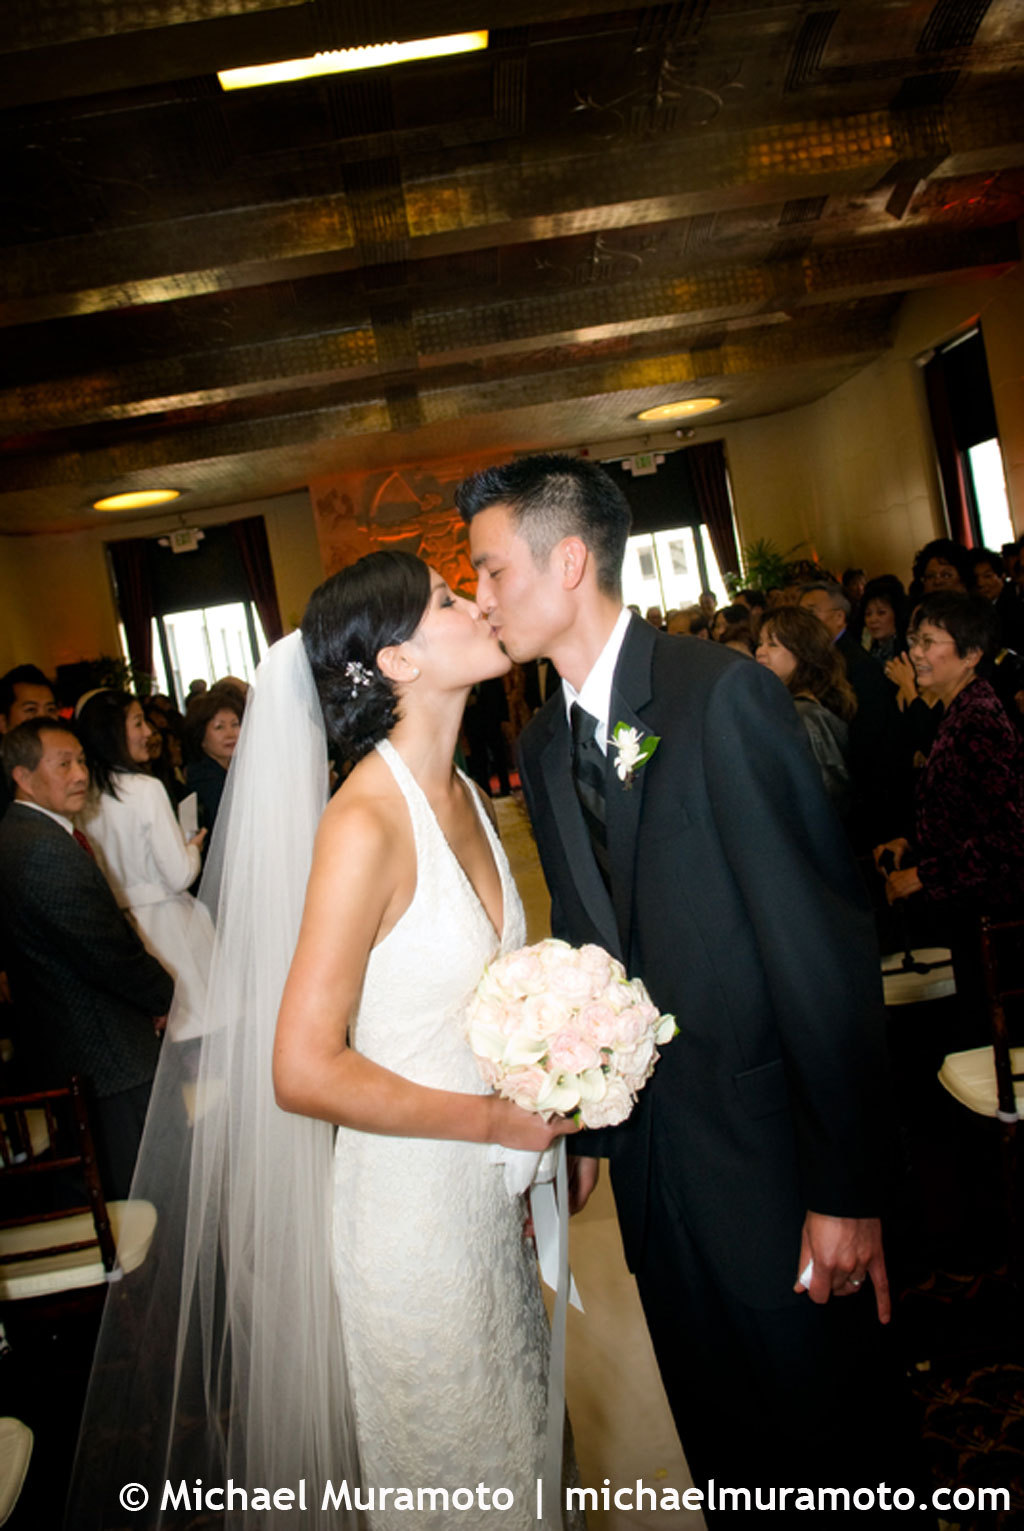 Ceremony, Flowers & Decor, Bride, Groom, Aisle, San francisco, Michael muramoto photography, City club